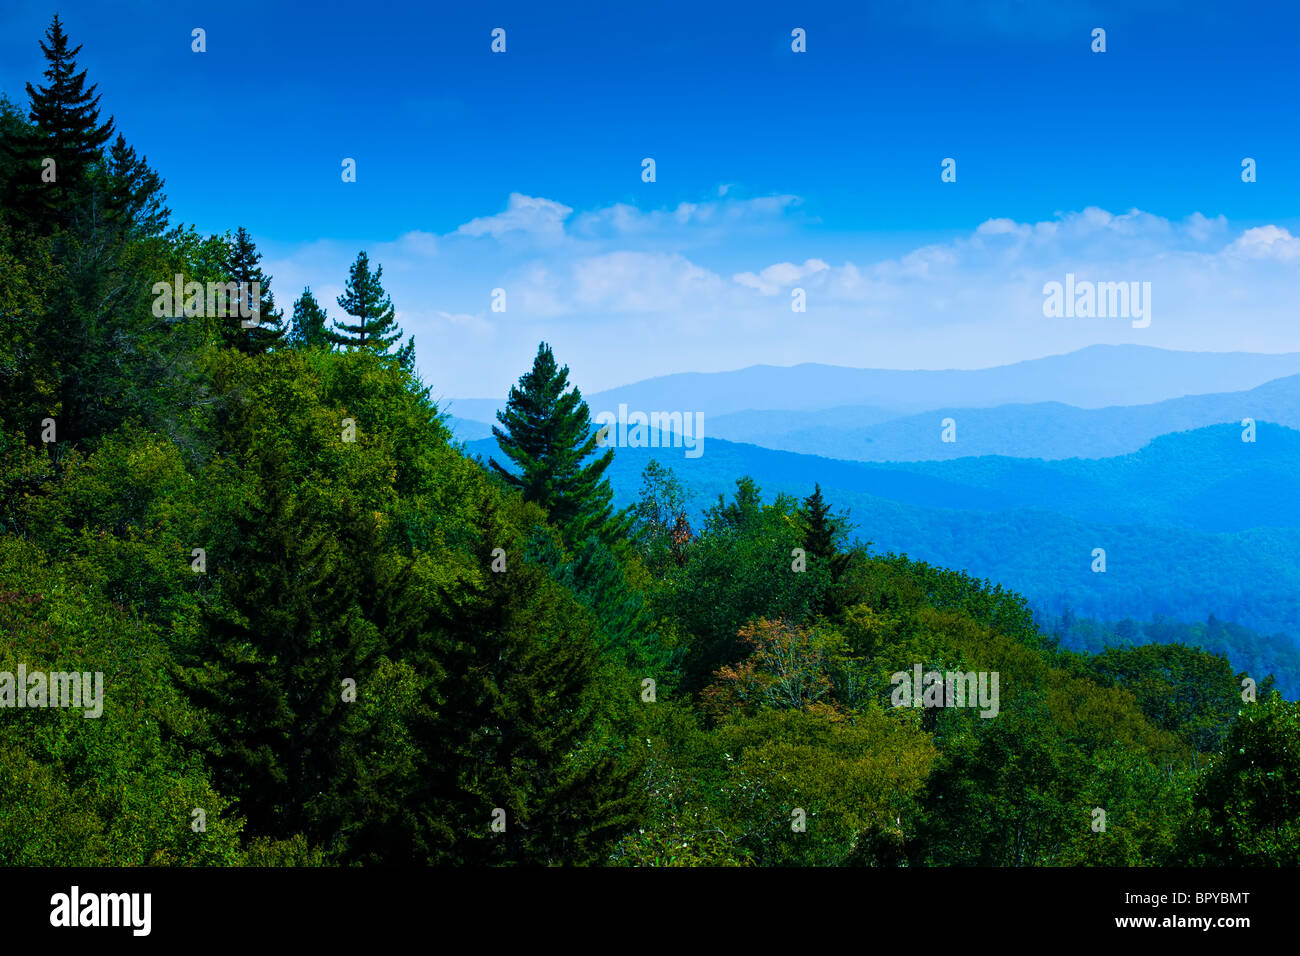 Great Smoky Mountains National Park - Stock Image